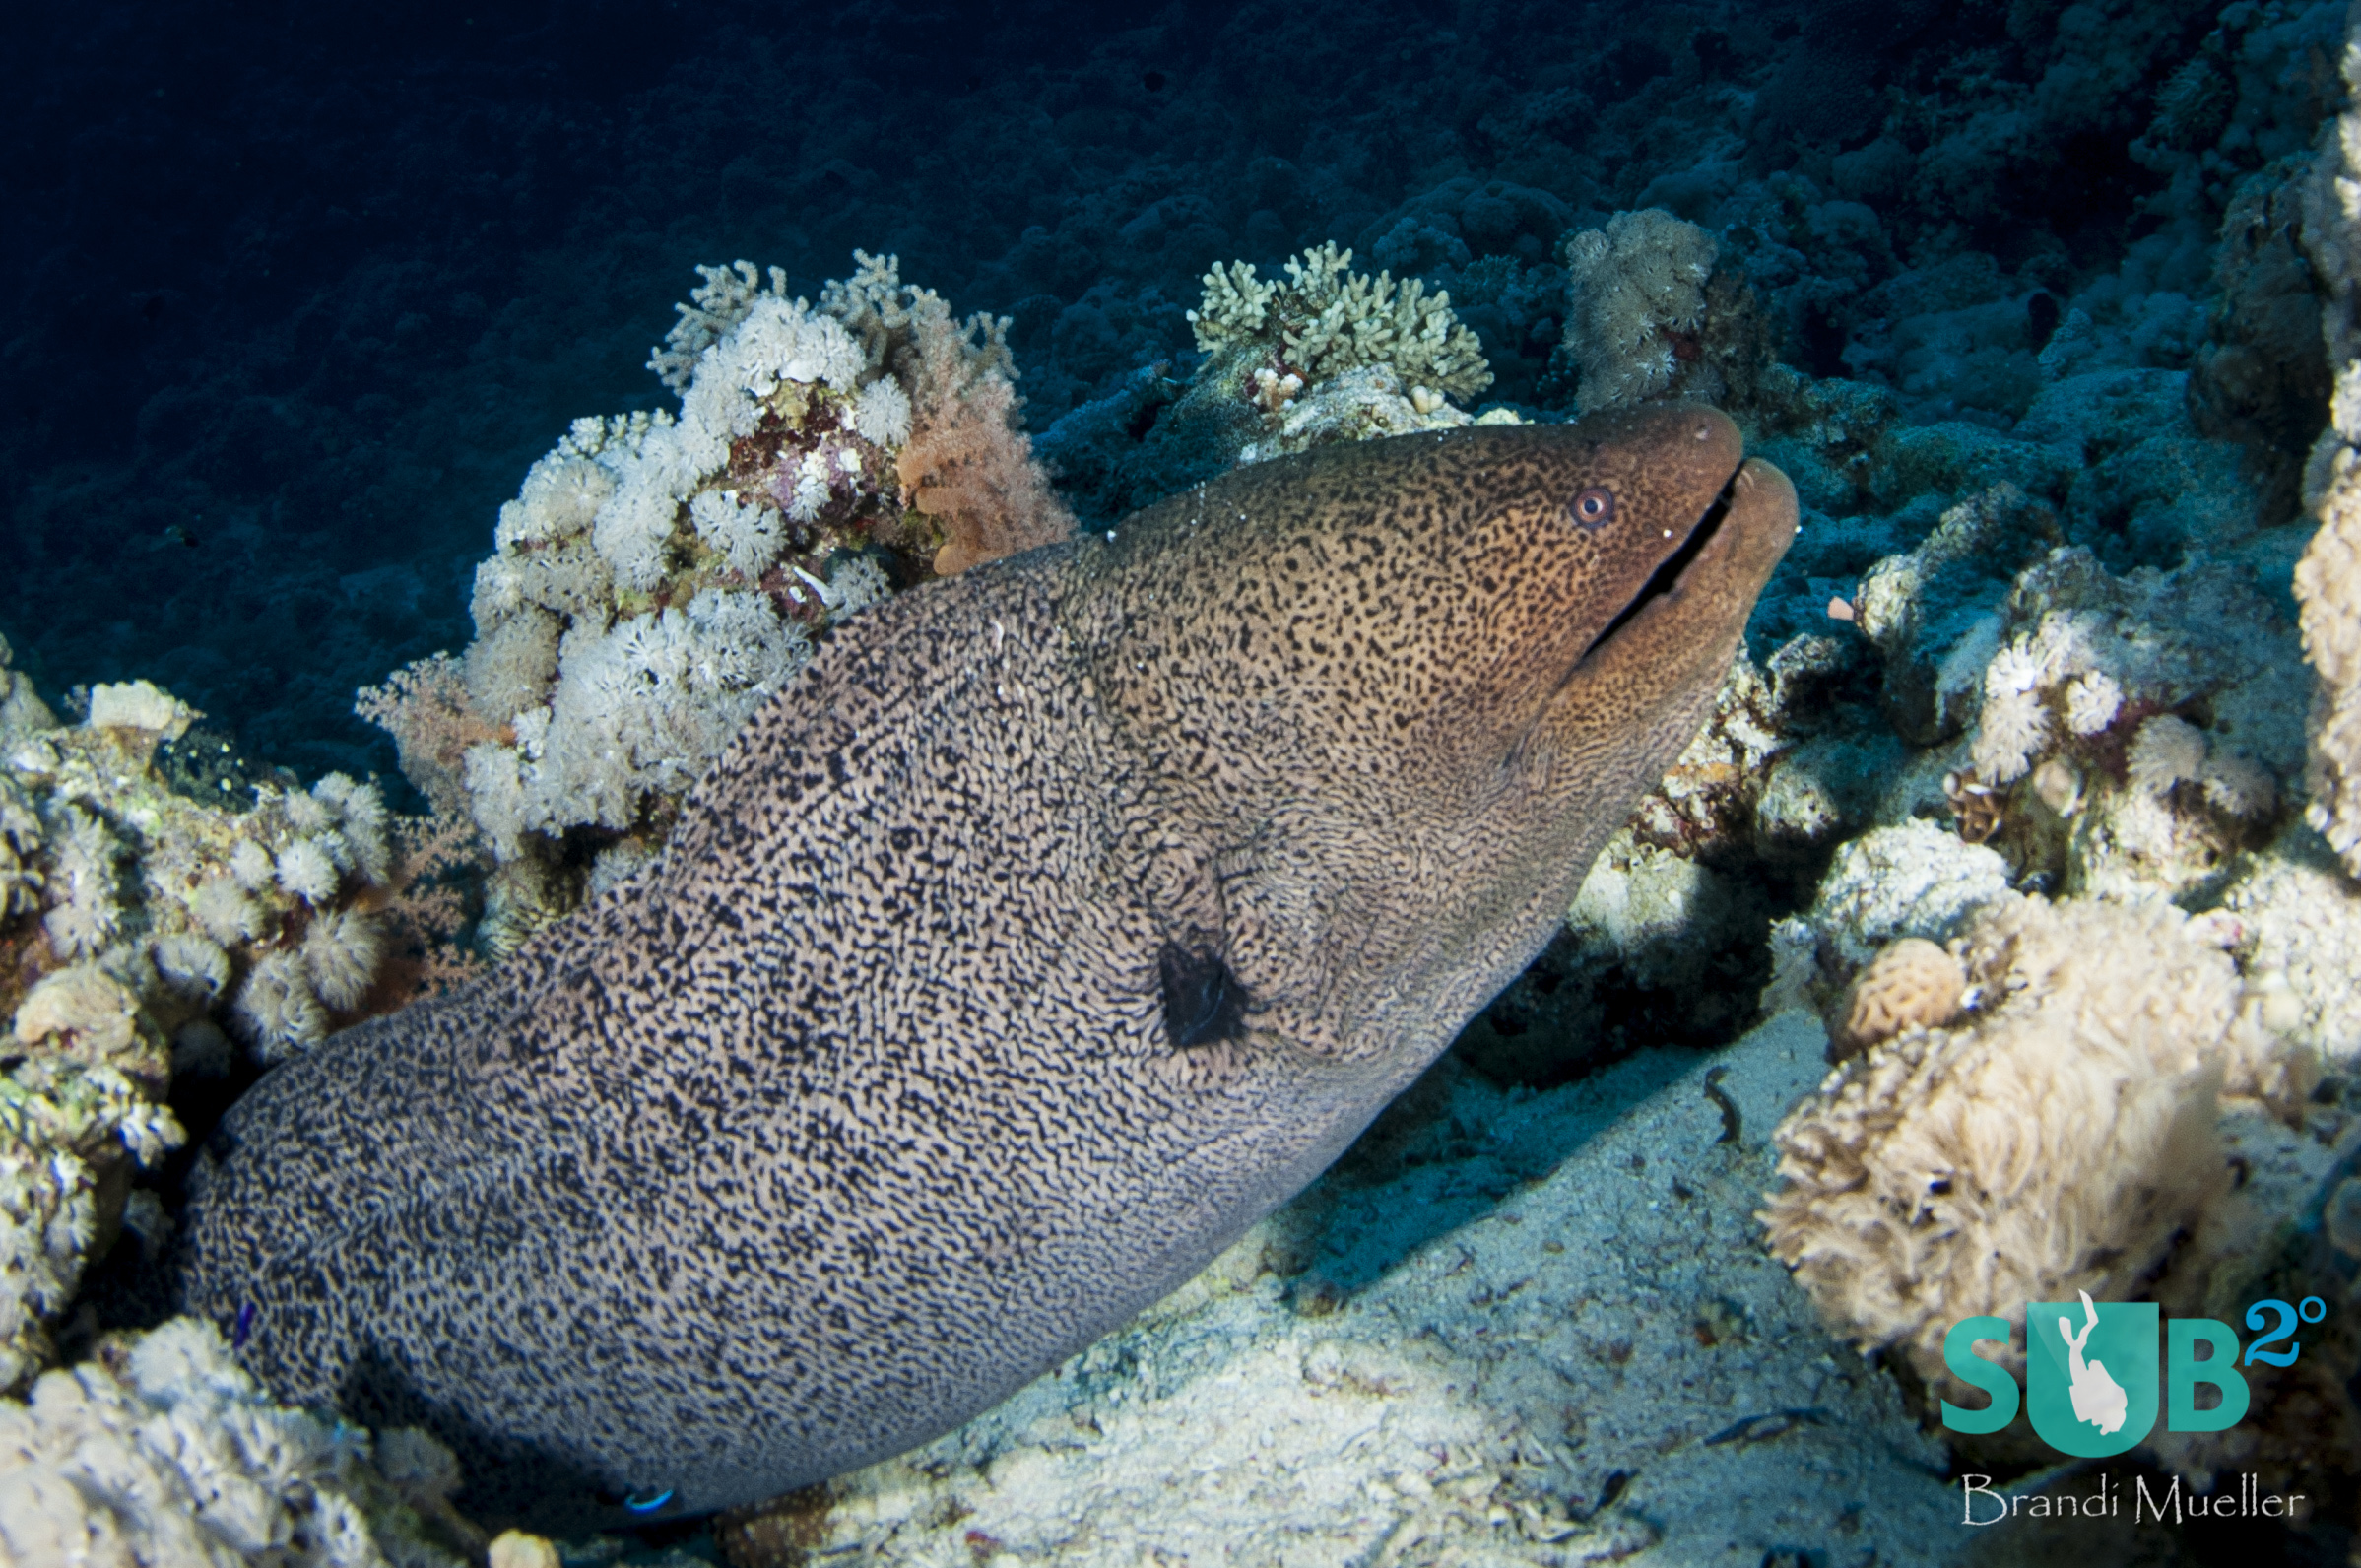 The giant moray eel (Gymnothorax javanicus) is the surly old man of the reef.